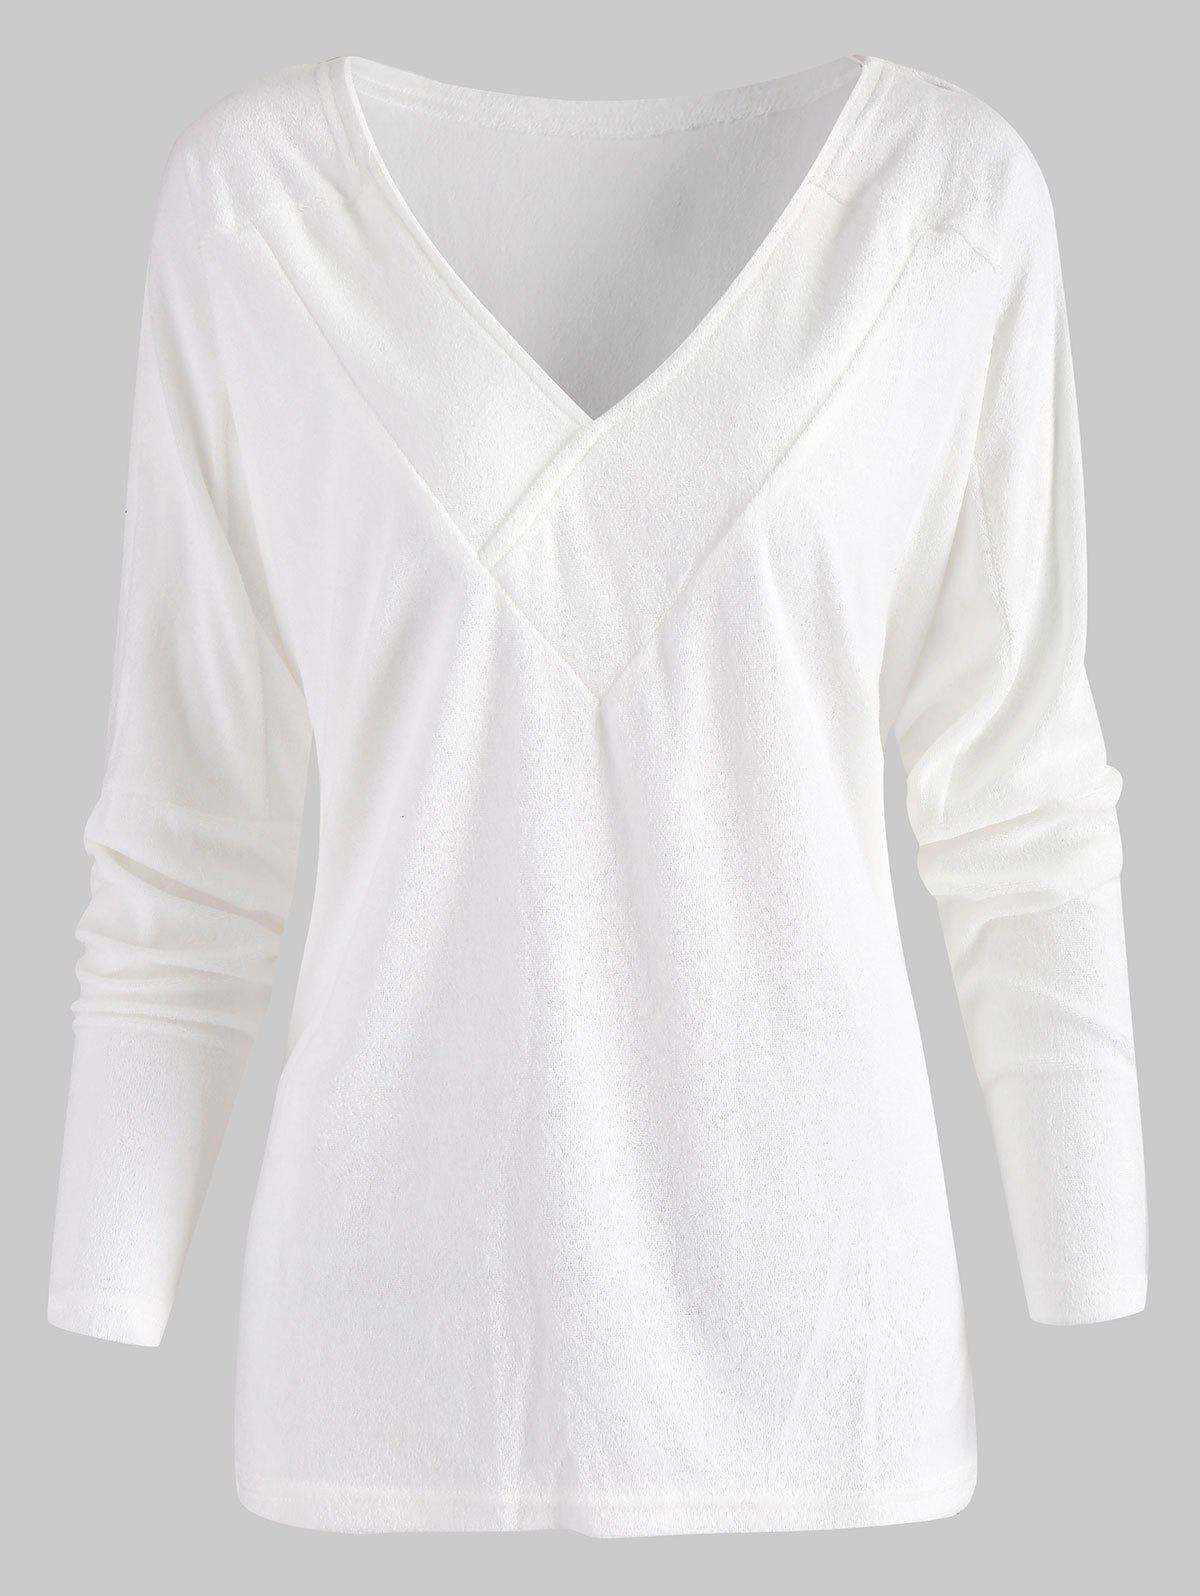 Unique V Neck Batwing Sleeve T Shirt